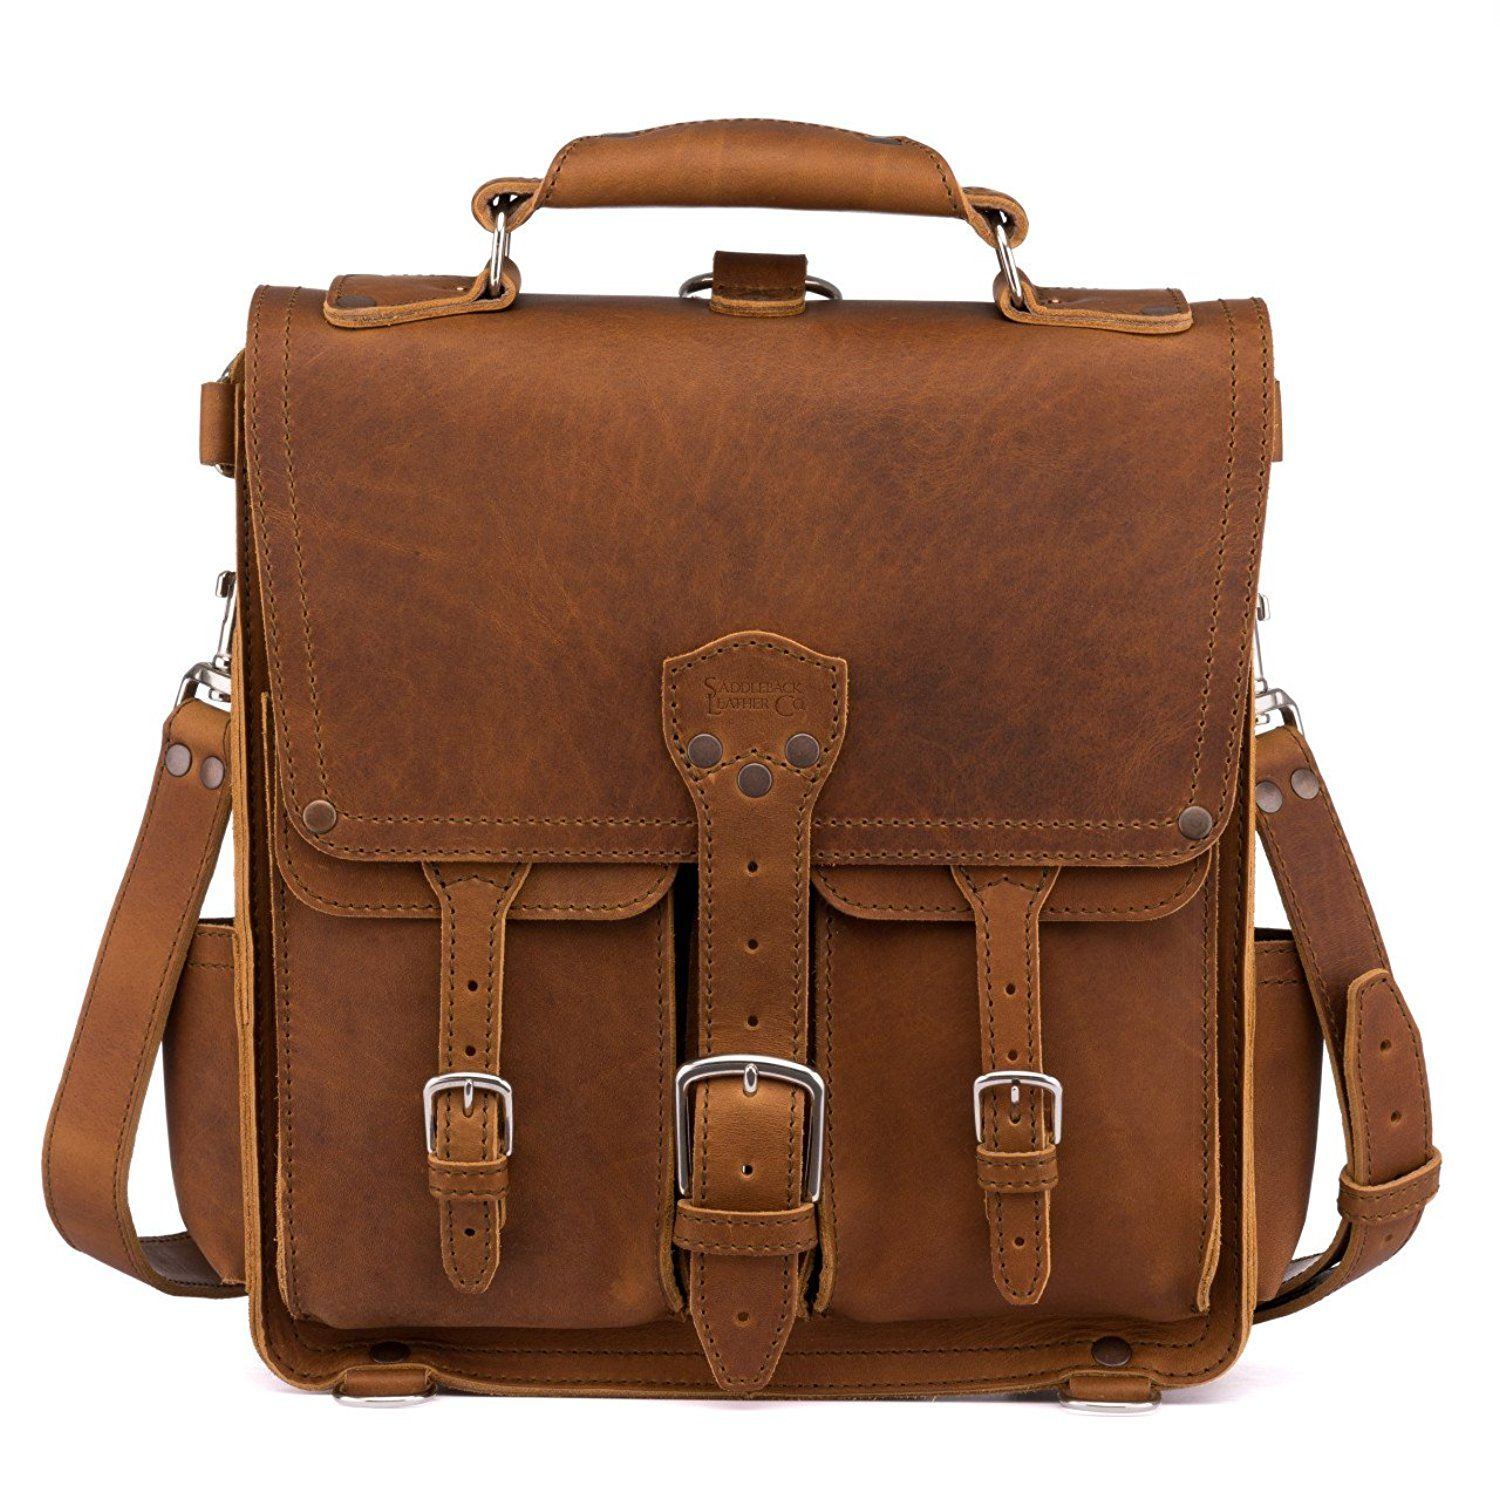 2a798bd4b5 Saddleback Leather Front Pocket Messenger Bag – All Leather Vertical  Messenger     Click on the image for additional details. (This is an Amazon  Affiliate ...